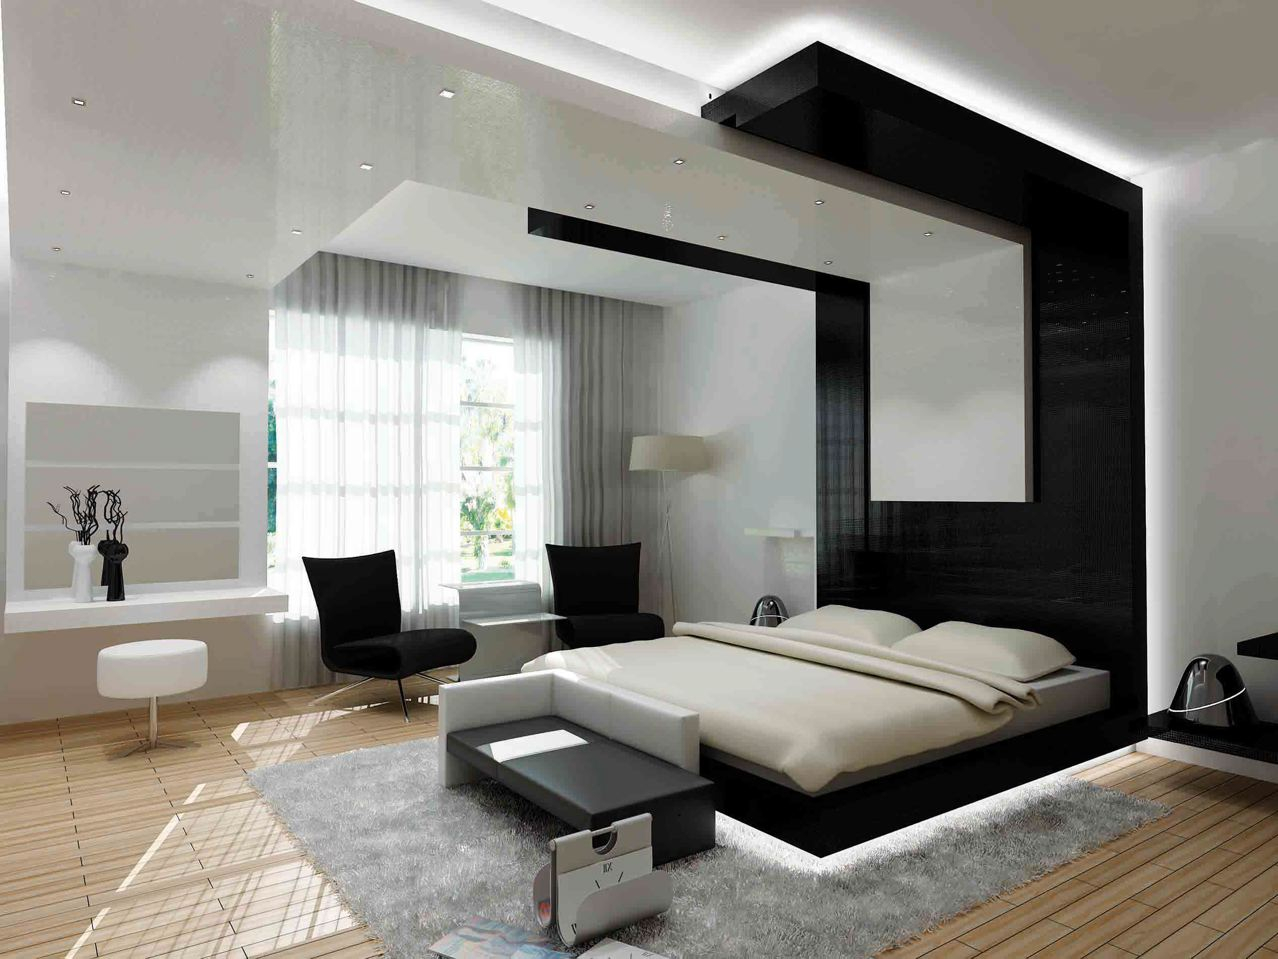 Master Colors Wall Diy De Modern Plants Designs Rustic Grey in 11 Awesome Concepts of How to Craft Modern Design Bedrooms